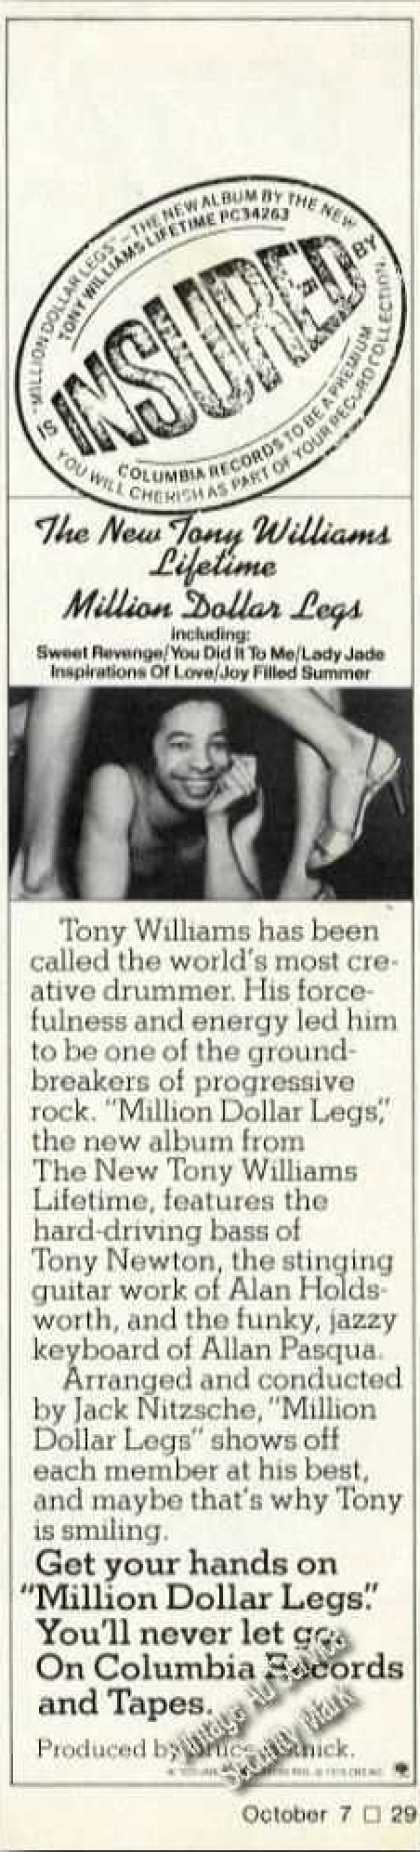 Tony Williams Photo Album Promo Music (1976)